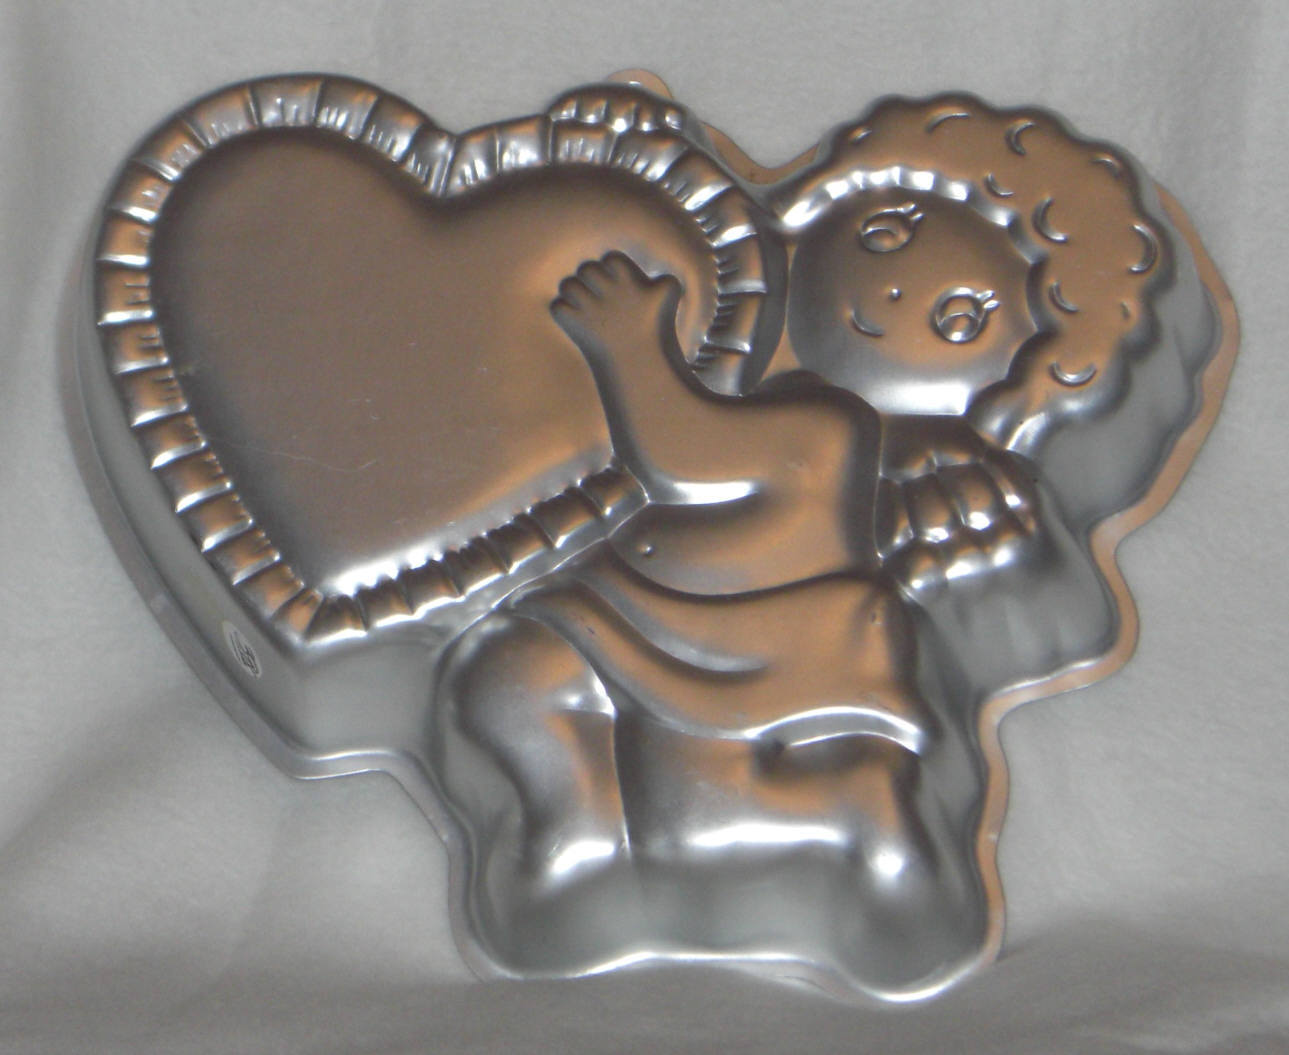 Primary image for Wilton Cake Pan CUPID'S DELIGHT Valentine Pan 502-4262 1982